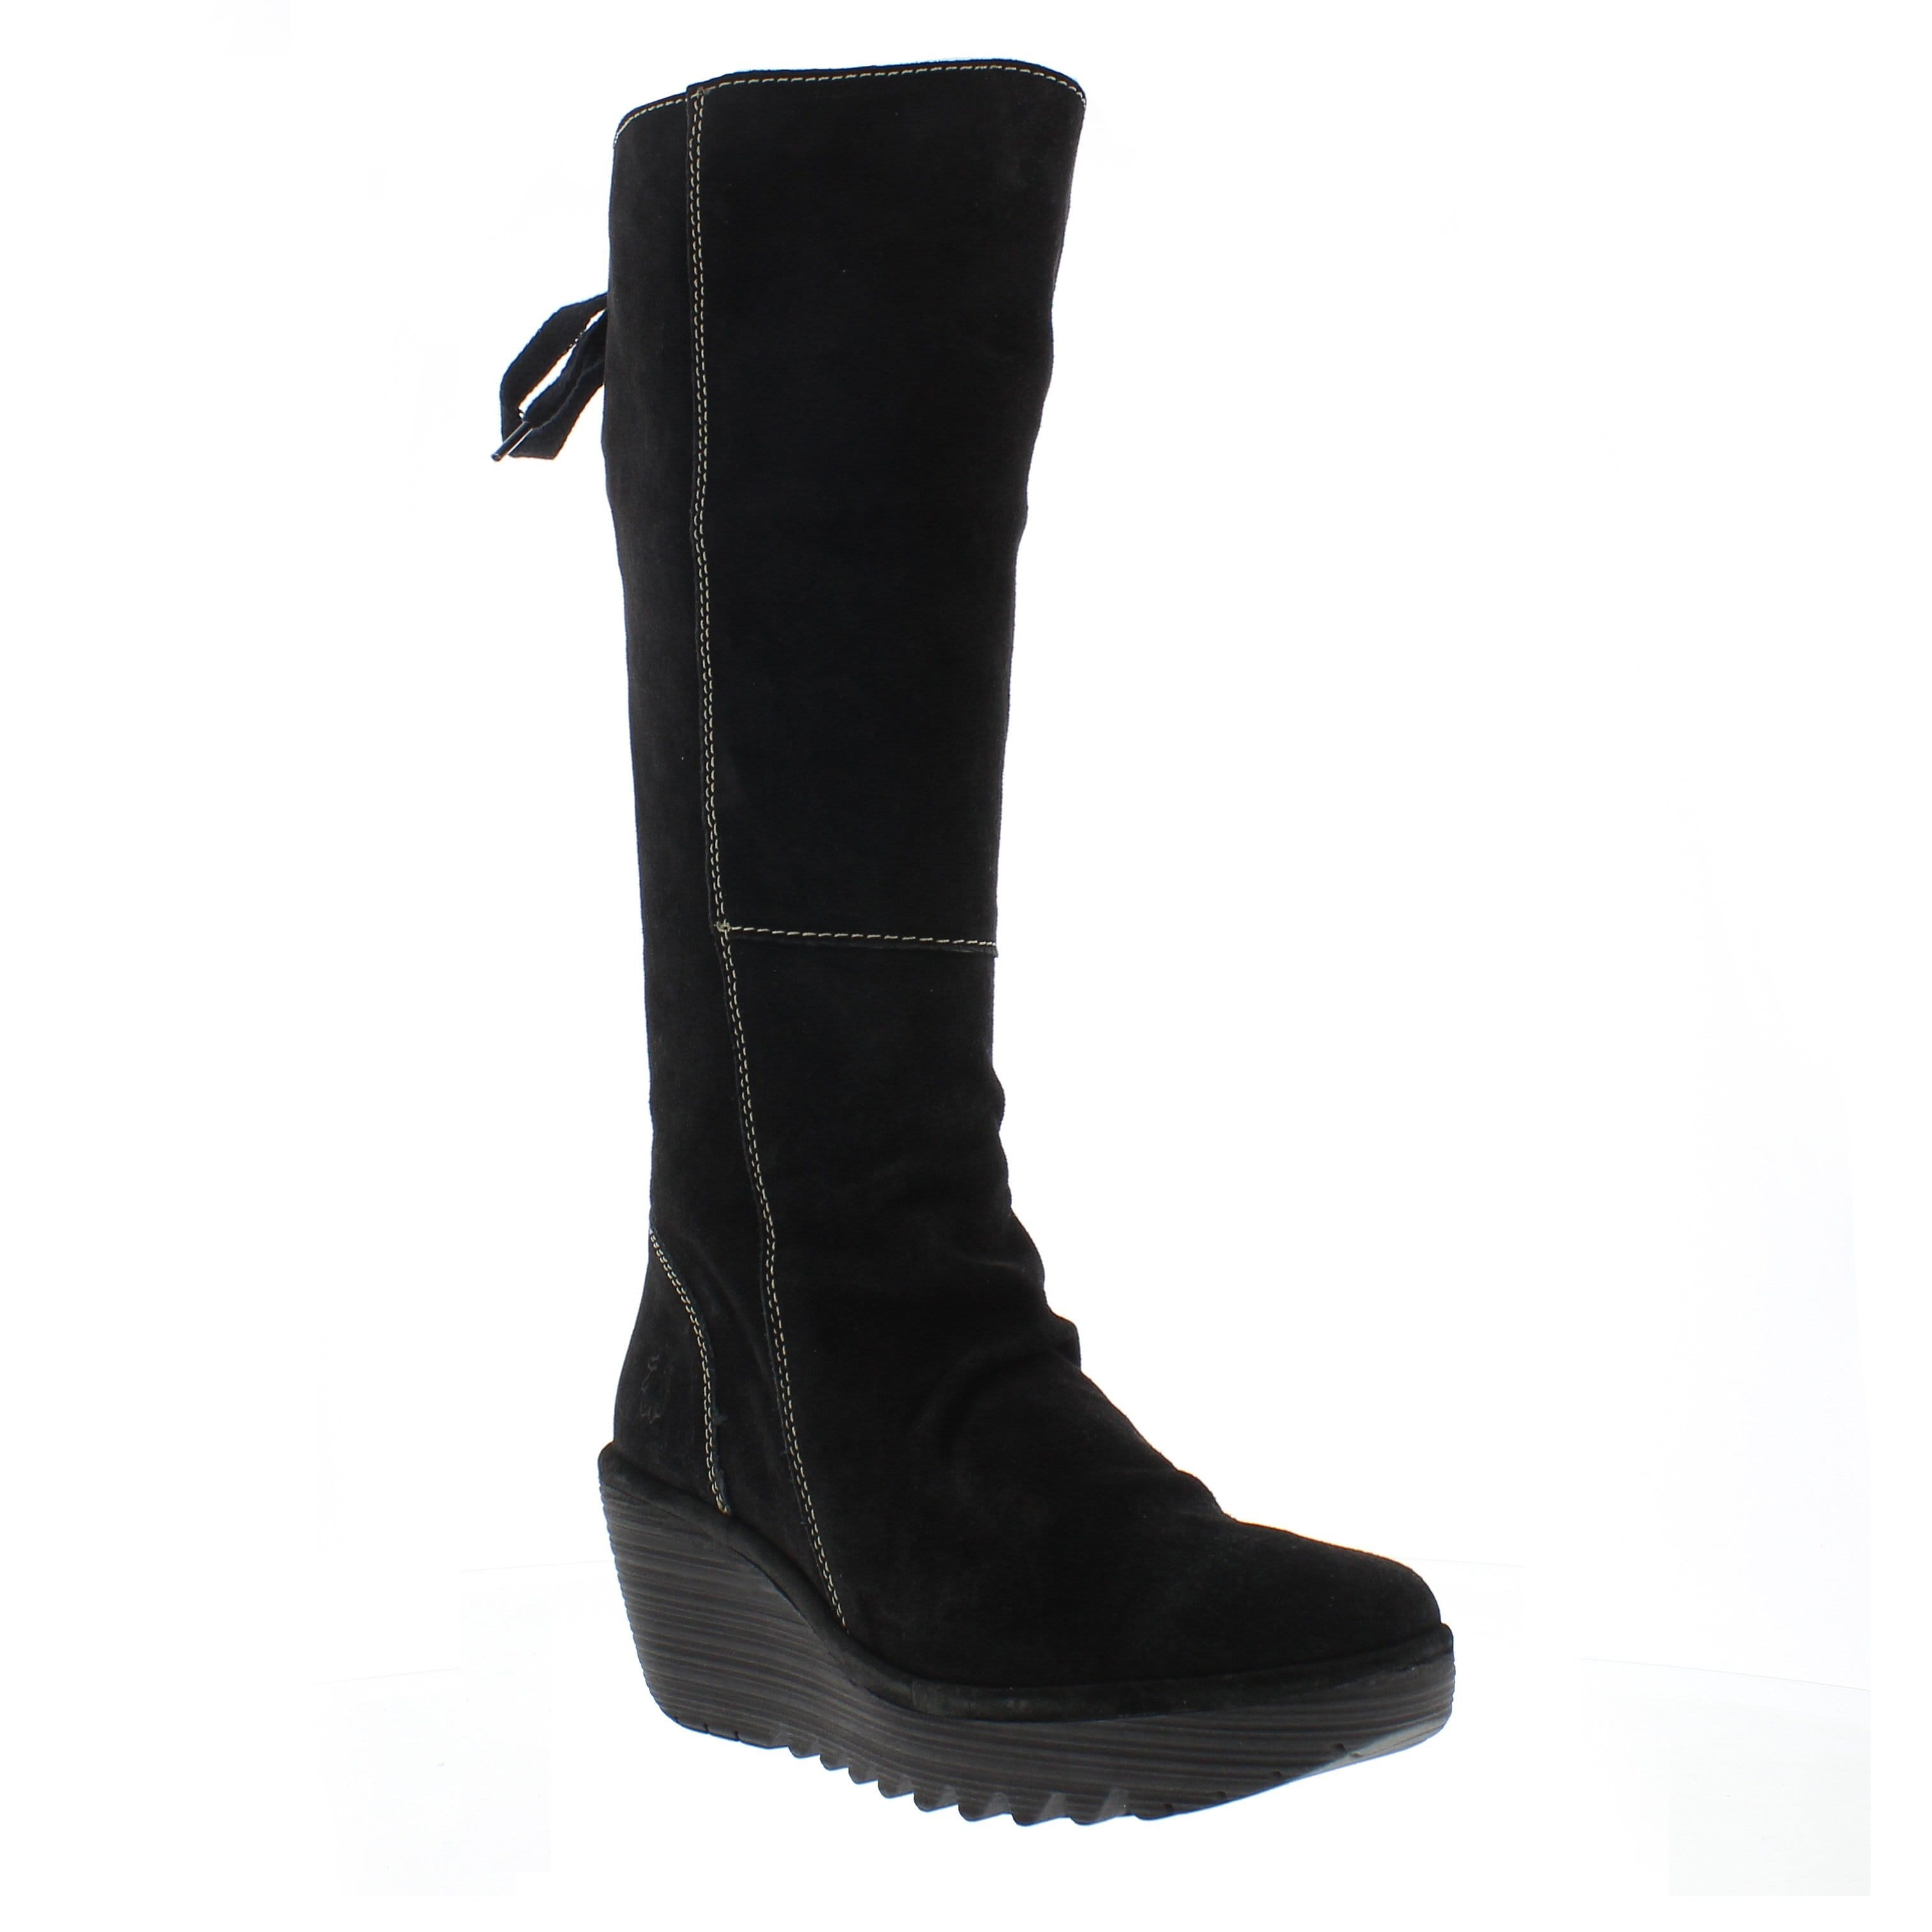 07c3833f7be7 FLY London Yust Women s Tall Lace Back Relaxed Leather Wedge Boot Shoe